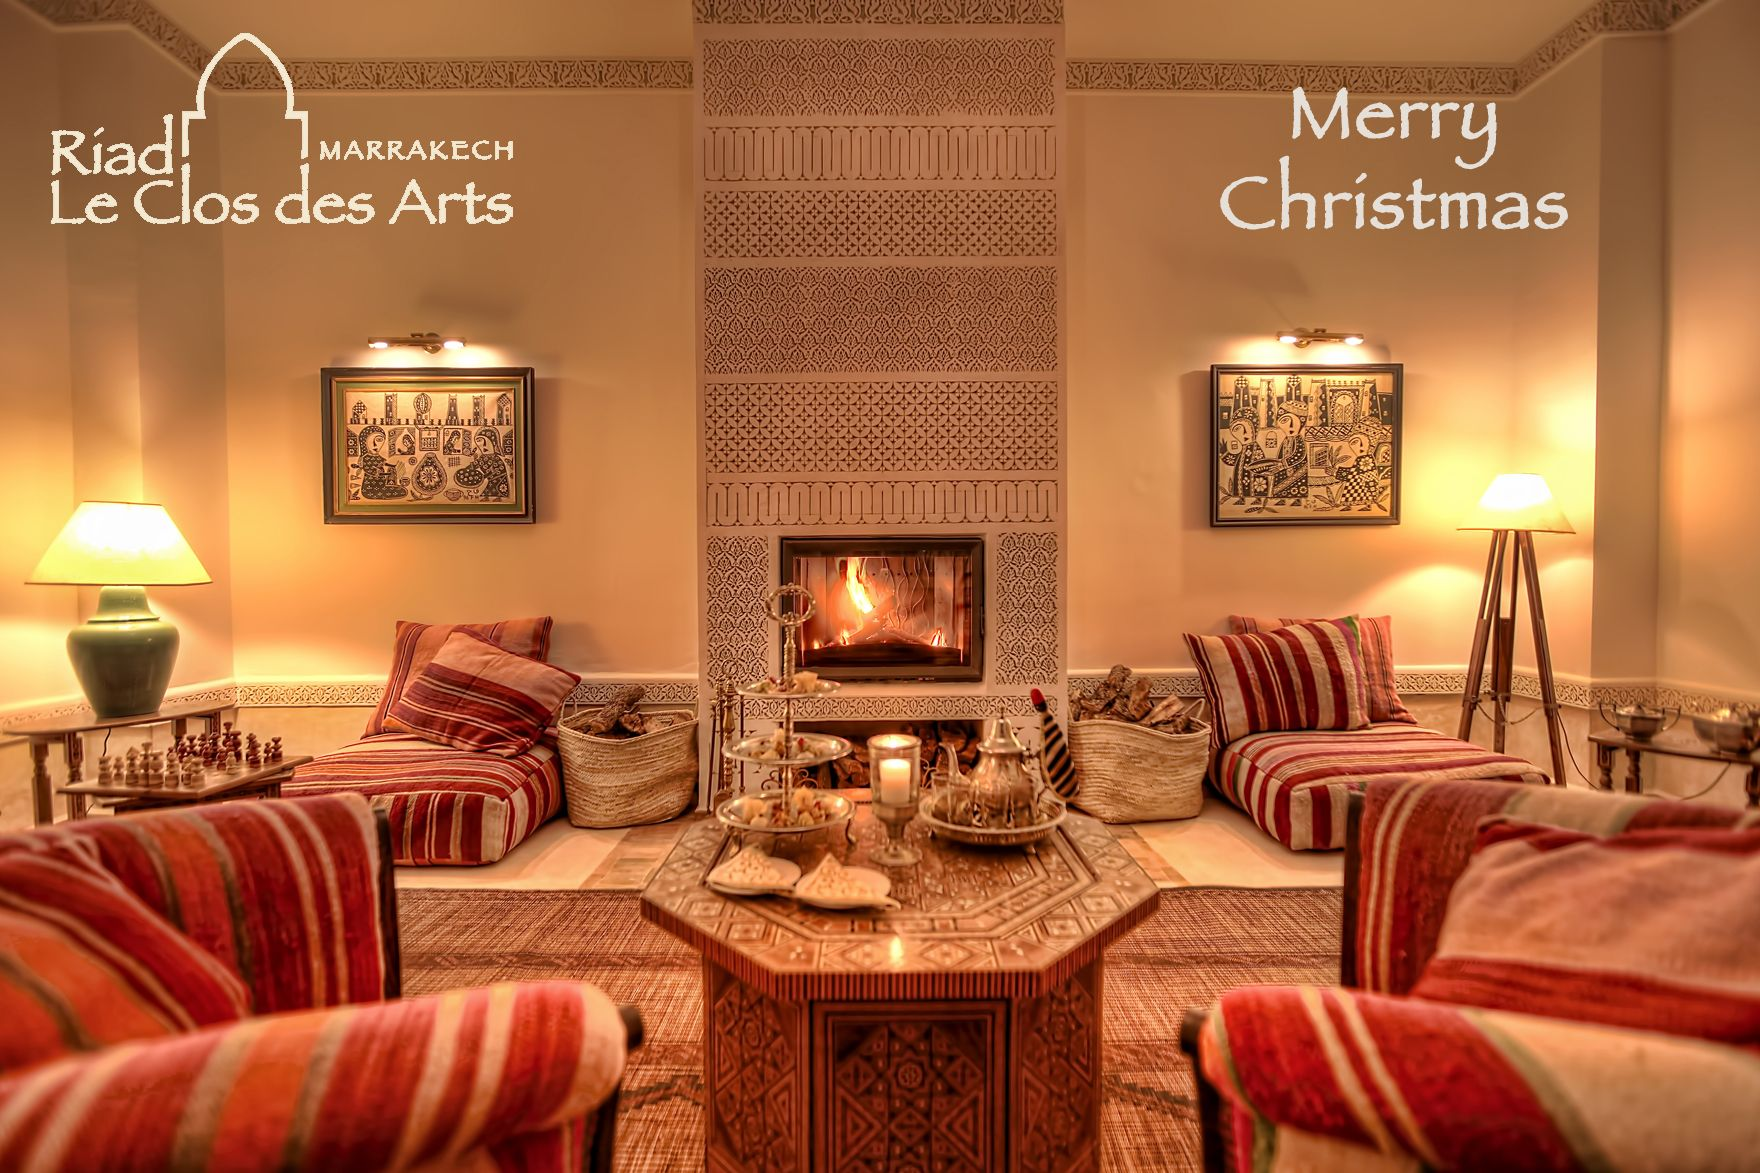 Pin by riad le clos des arts on merry christmas pinterest